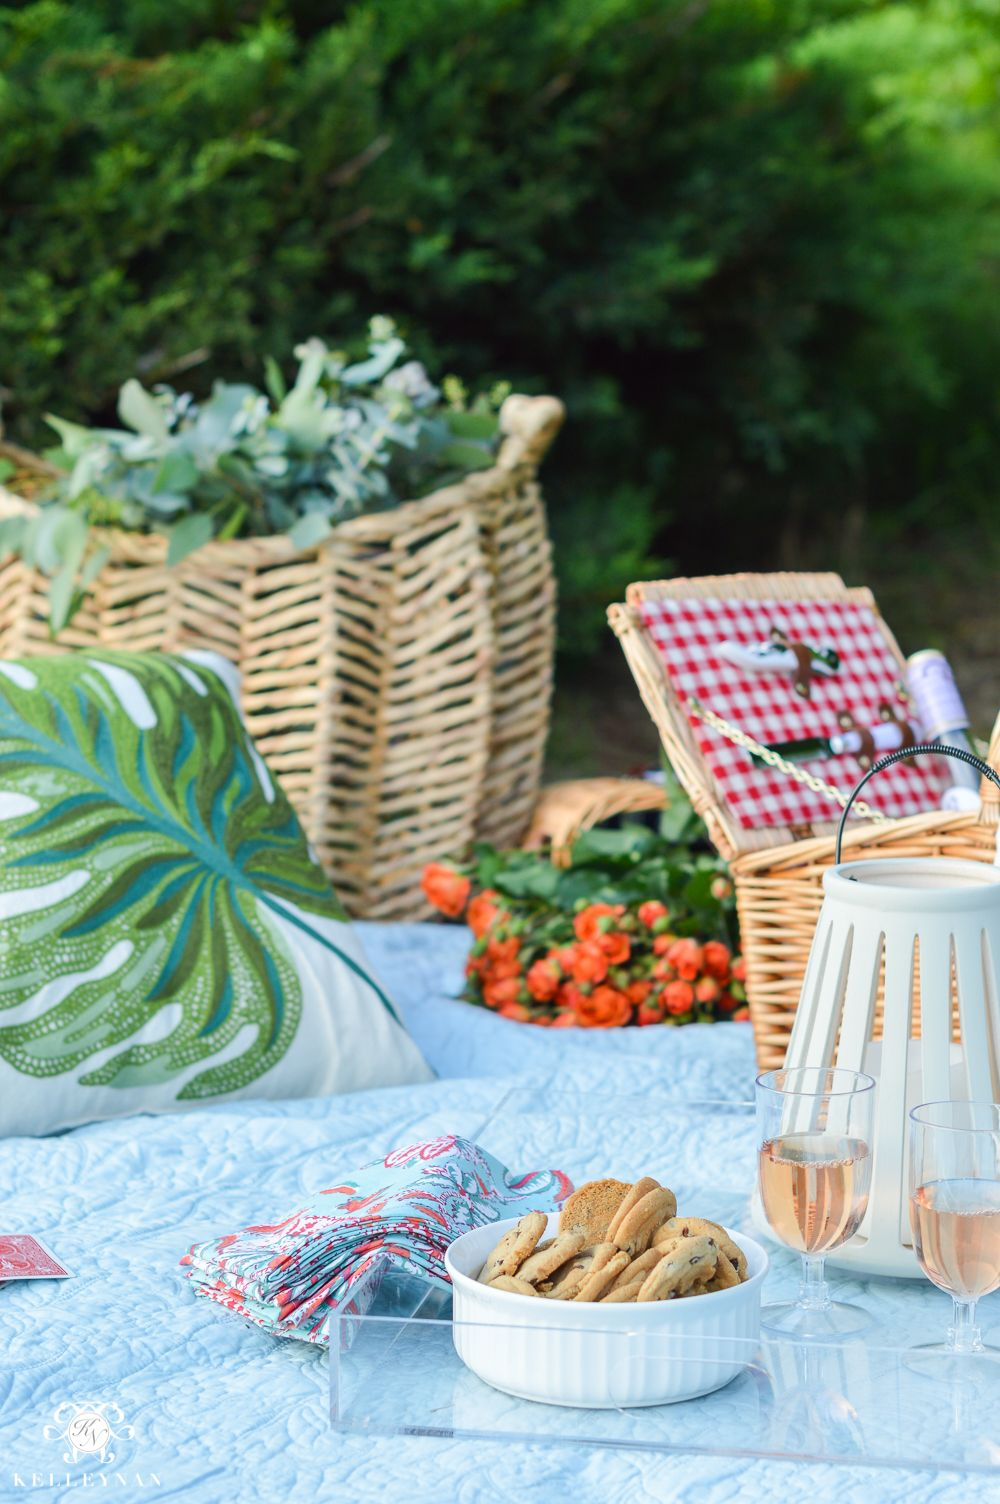 Picnic Decor Picnic And Tailgate Ideas And Setup Trays With Finger Food